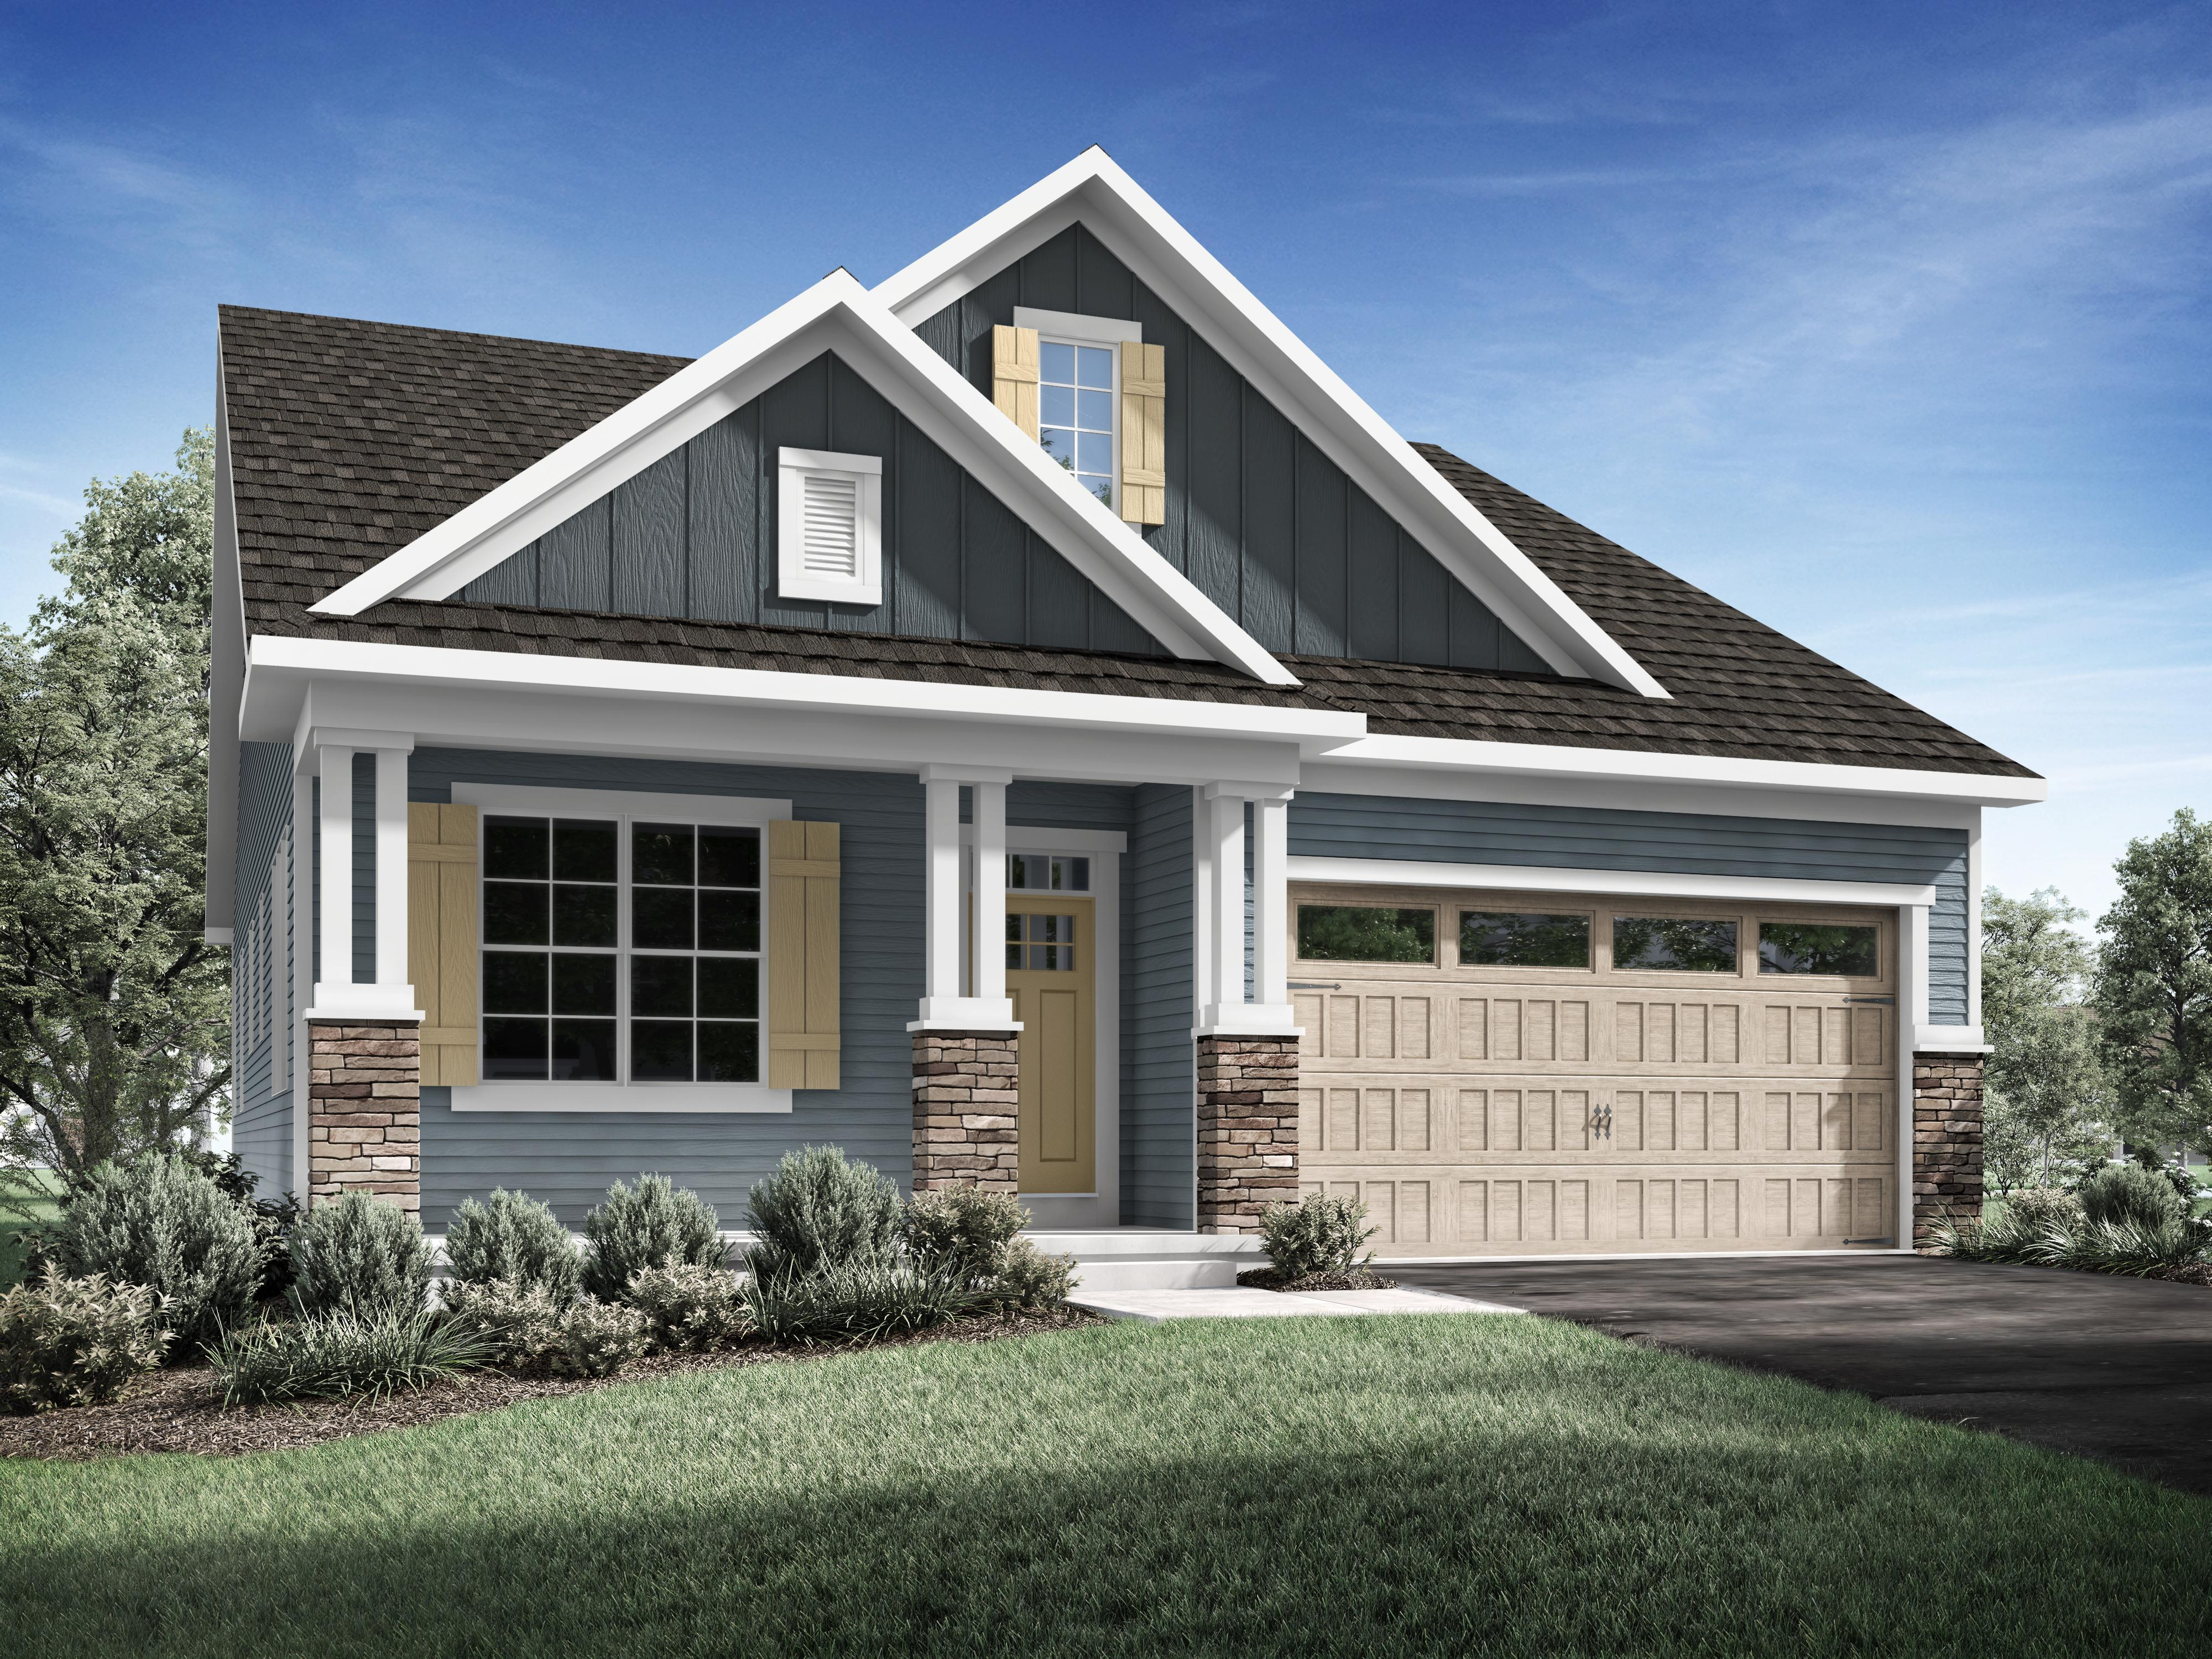 'Northside Place' by Riedman Homes in Elmira